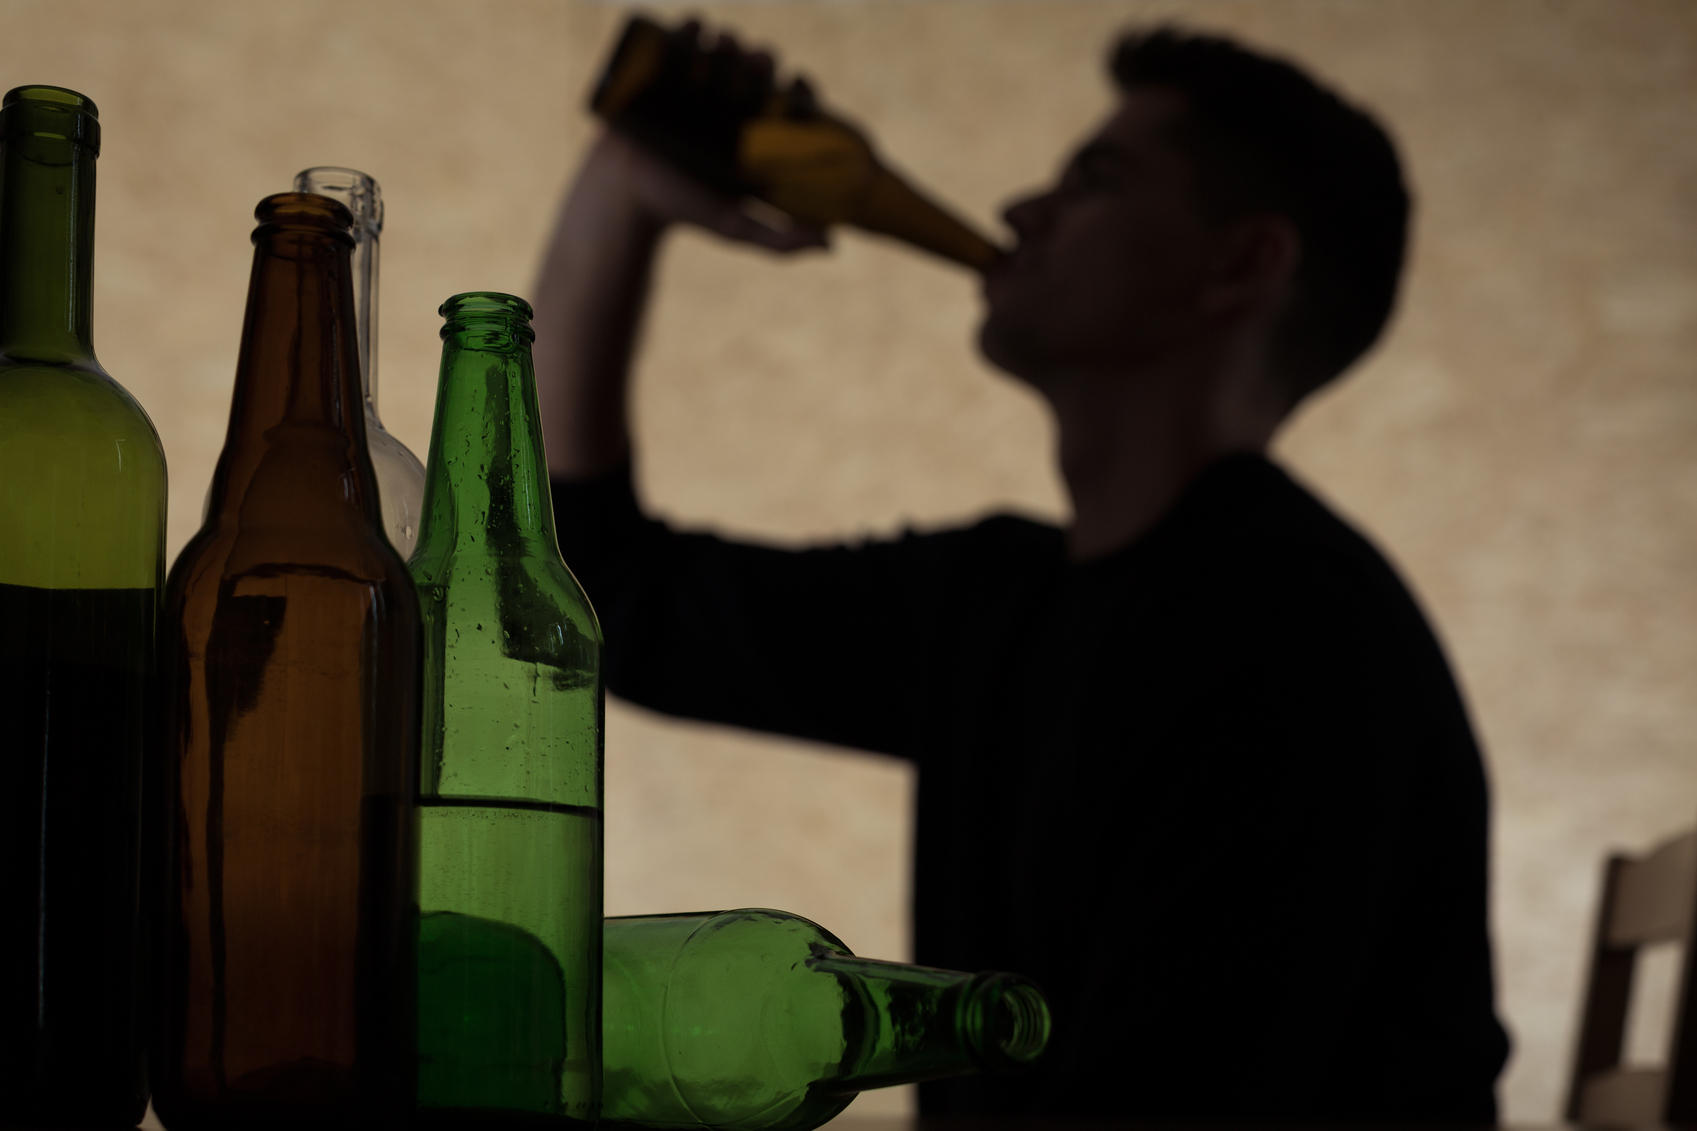 an analysis of the underage drinking of alcoholic beverages in the nineties Four question set question 1 - (asks about frequency of past 12 month drinking) during the last 12 months, how often did you usually have any kind of drink containing alcohol.